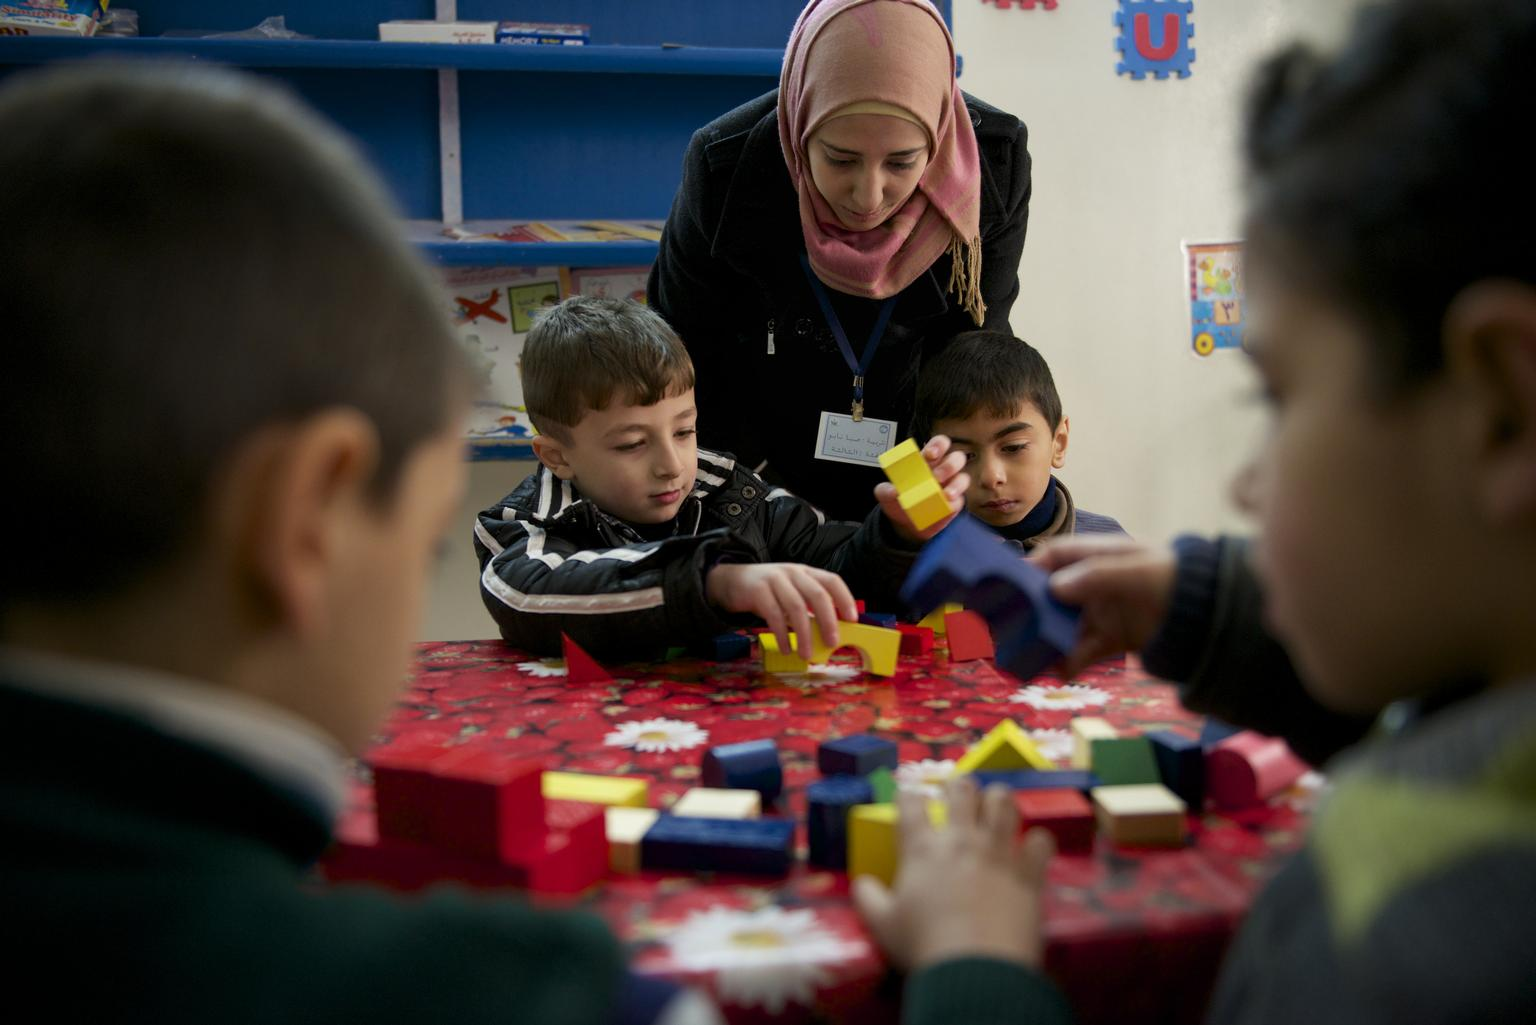 Boys play with block at a UNICEF-supported kindergarten in Homs. © UNICEF/NYHQ2013-1332/Noorani